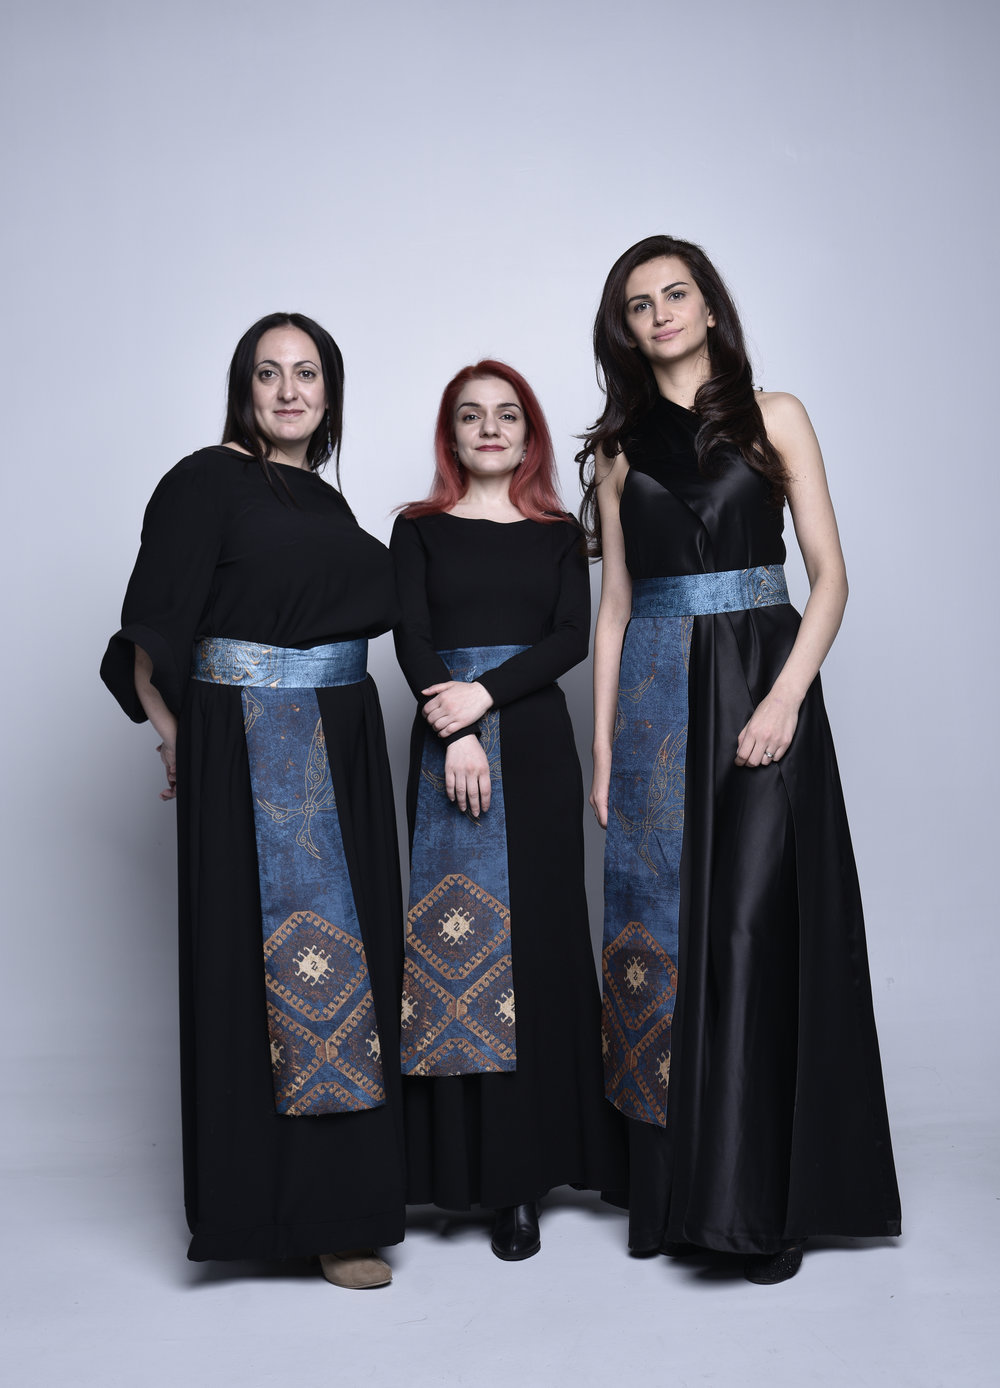 The women of the Naghash Ensemble. From left to right: soprano Hasmik  Baghdasaryan, soprano Tatevik Movsesyan, and alto Arpine Ter-Petrosyan. (Photo: David Galstyan).